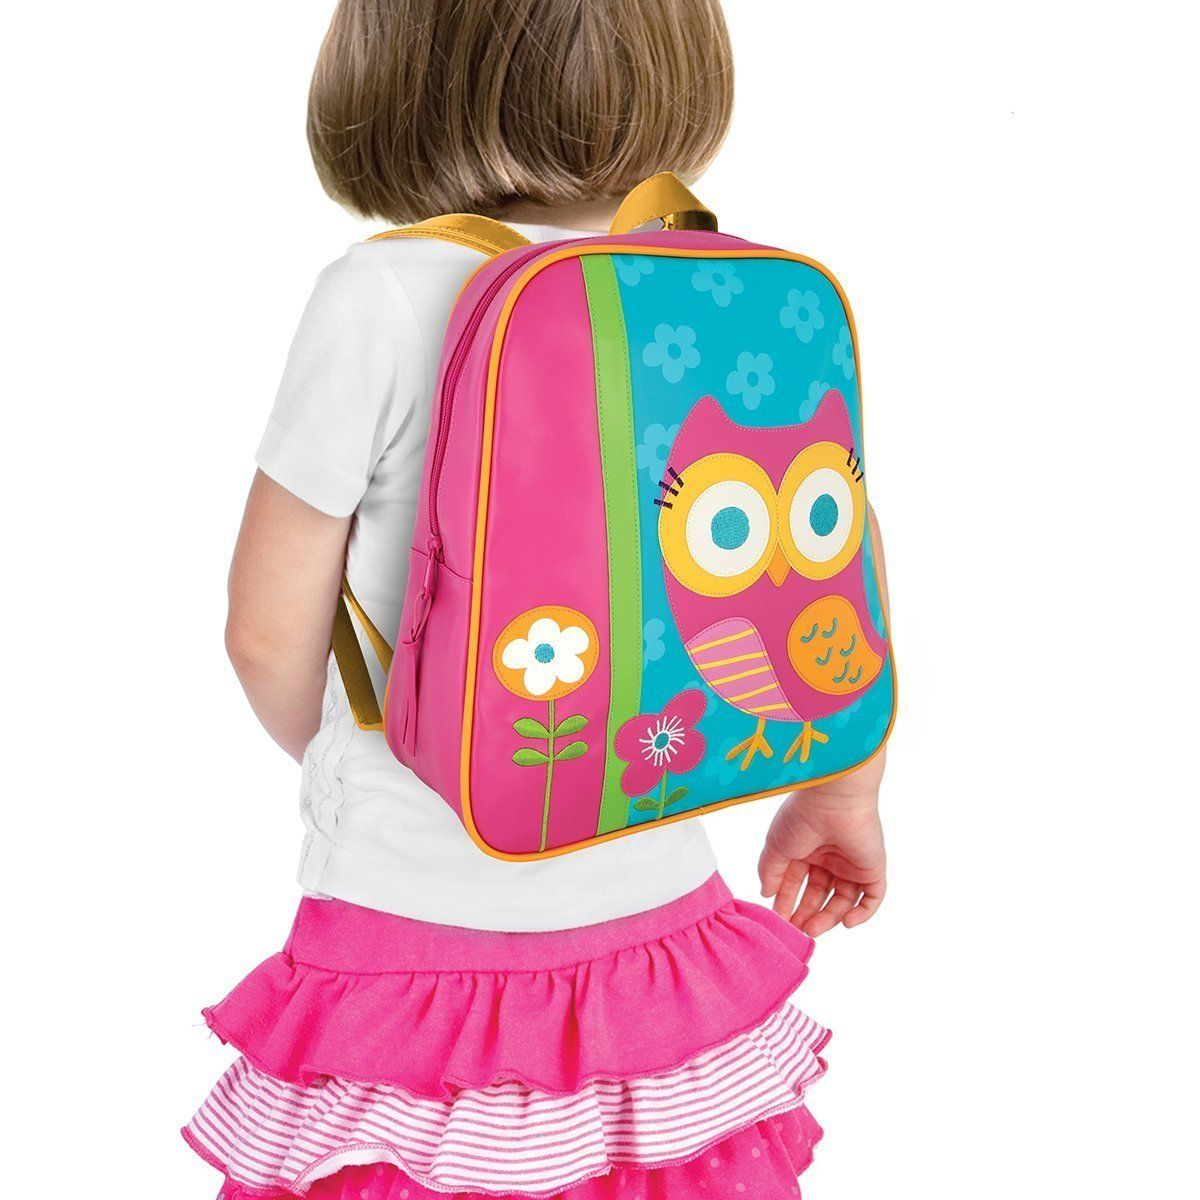 Stephen Joseph Owl Backpack  #StephenJoseph  #OwlBackpack  #Owls  #Backpacks  #School  #Kamisco